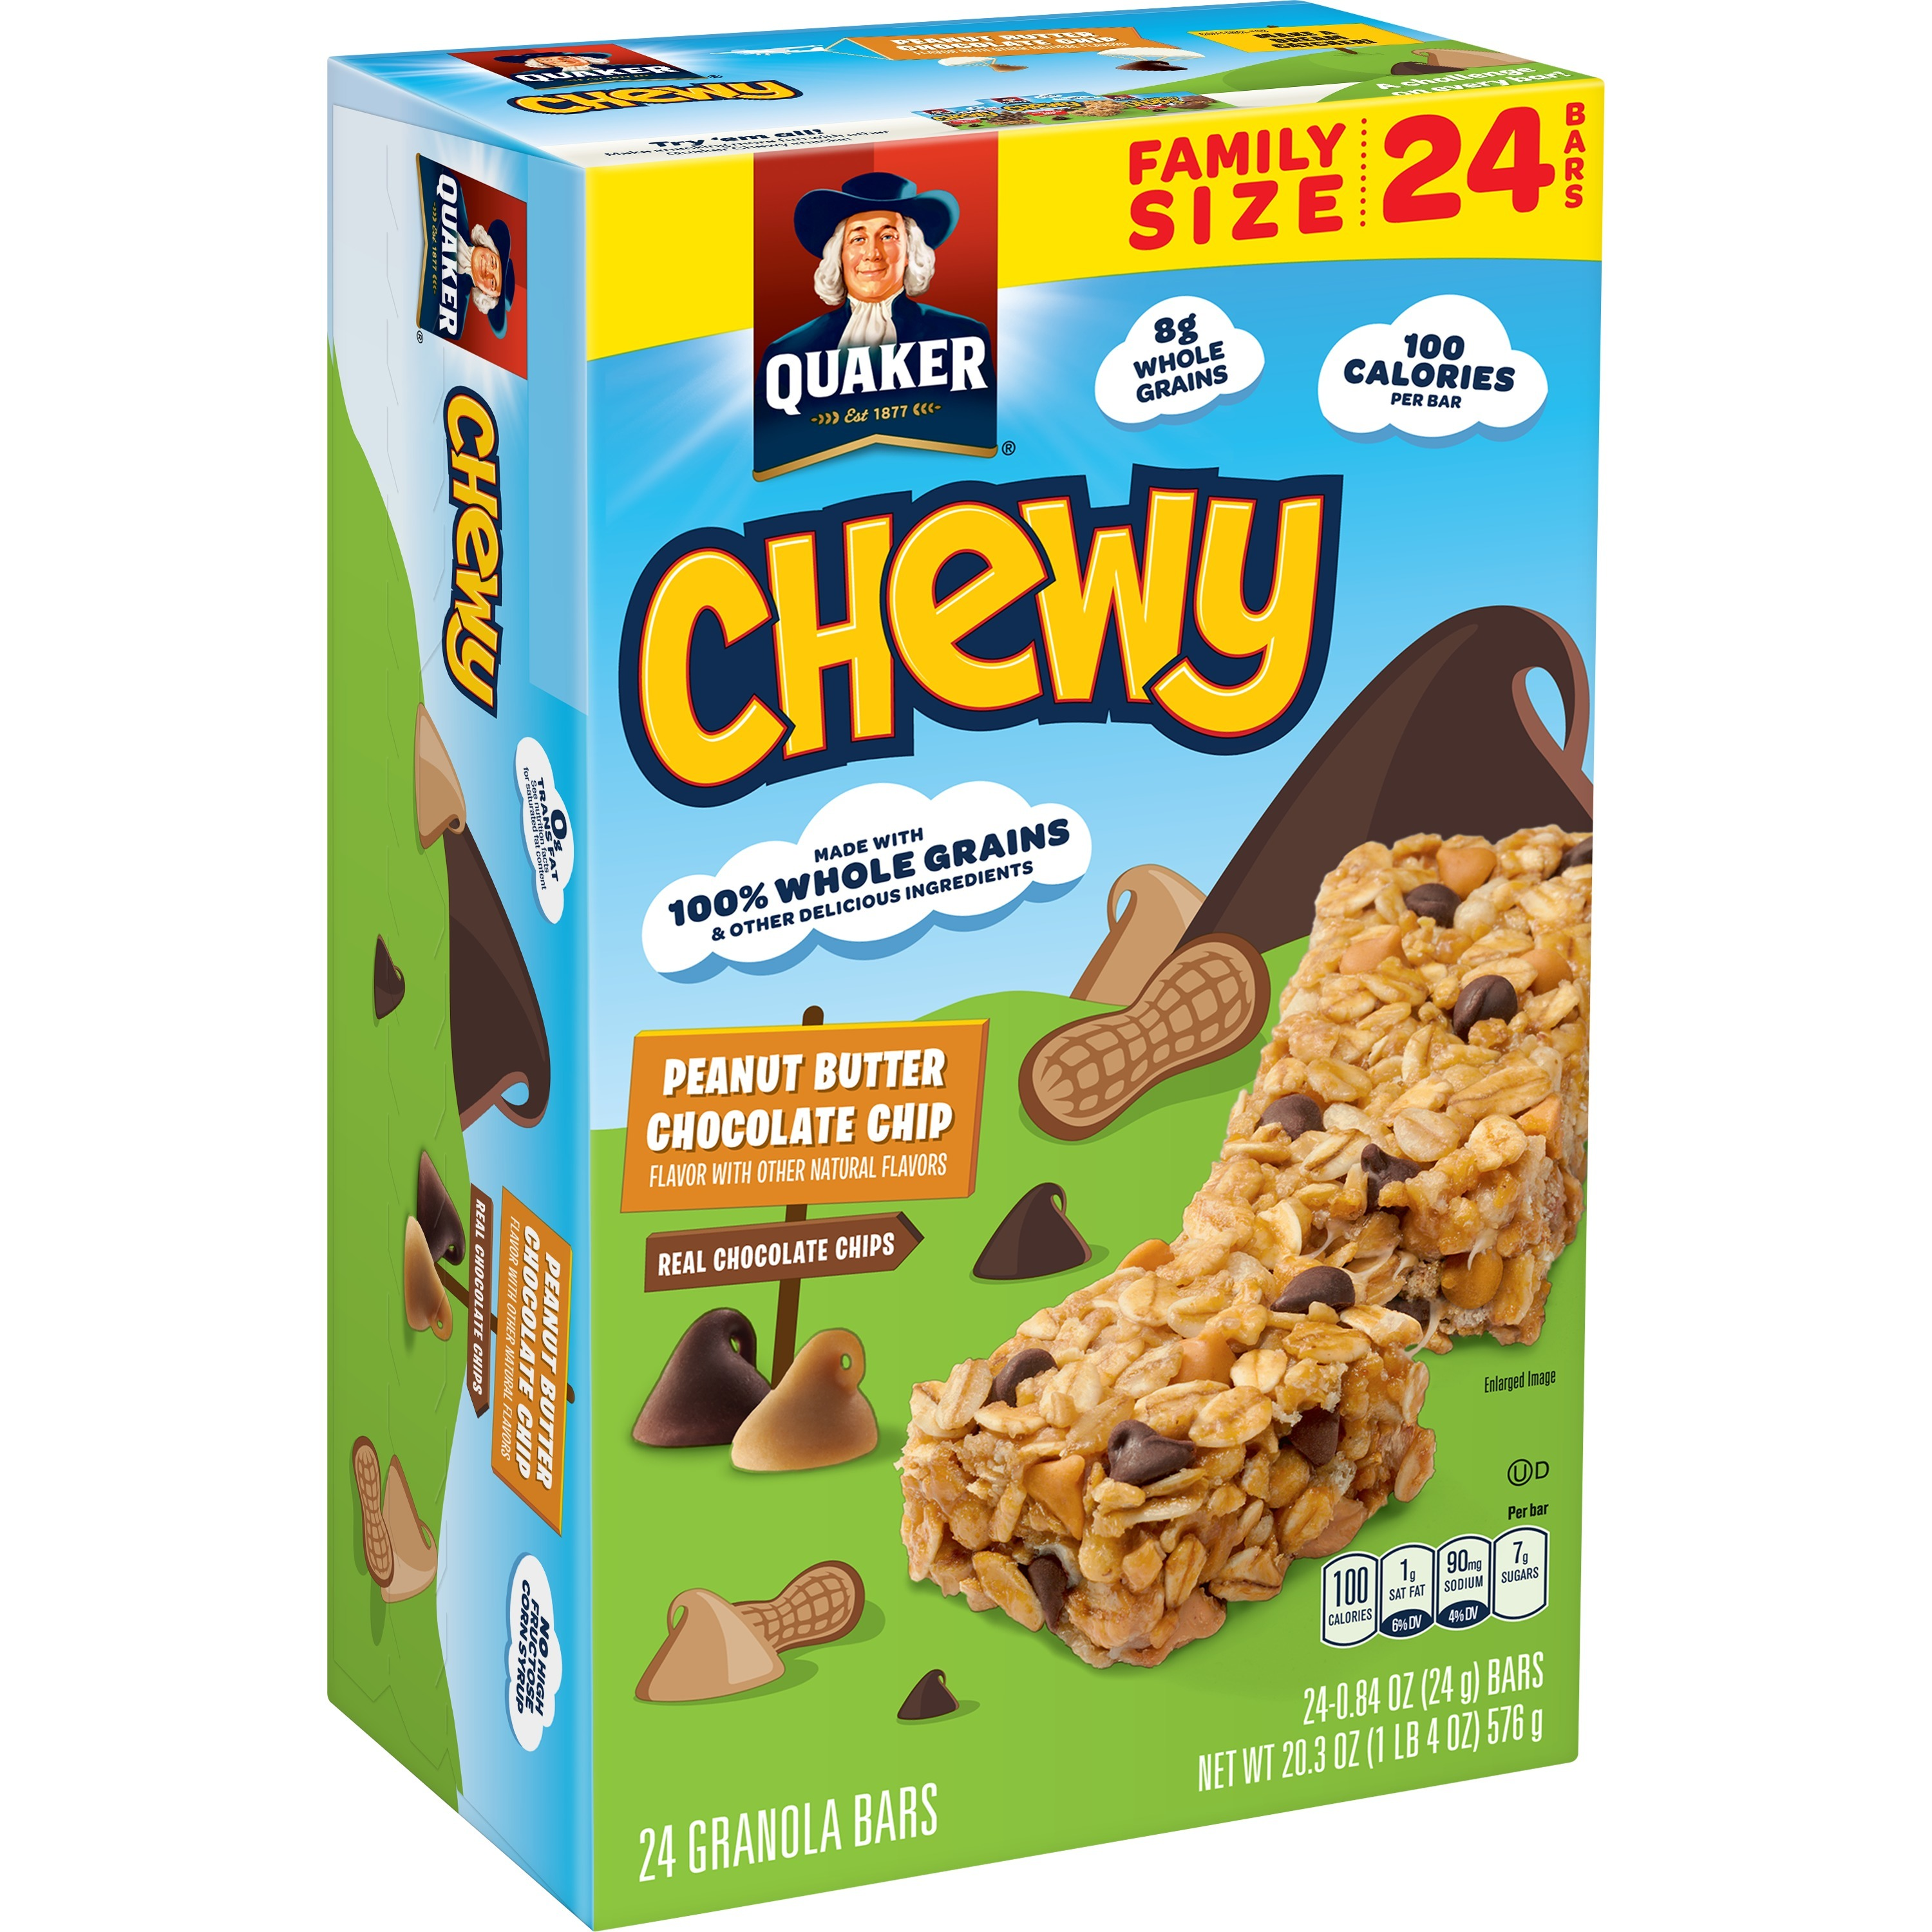 Quaker Chewy Granola Bars, Peanut Butter Chocolate Chip, 24 Count